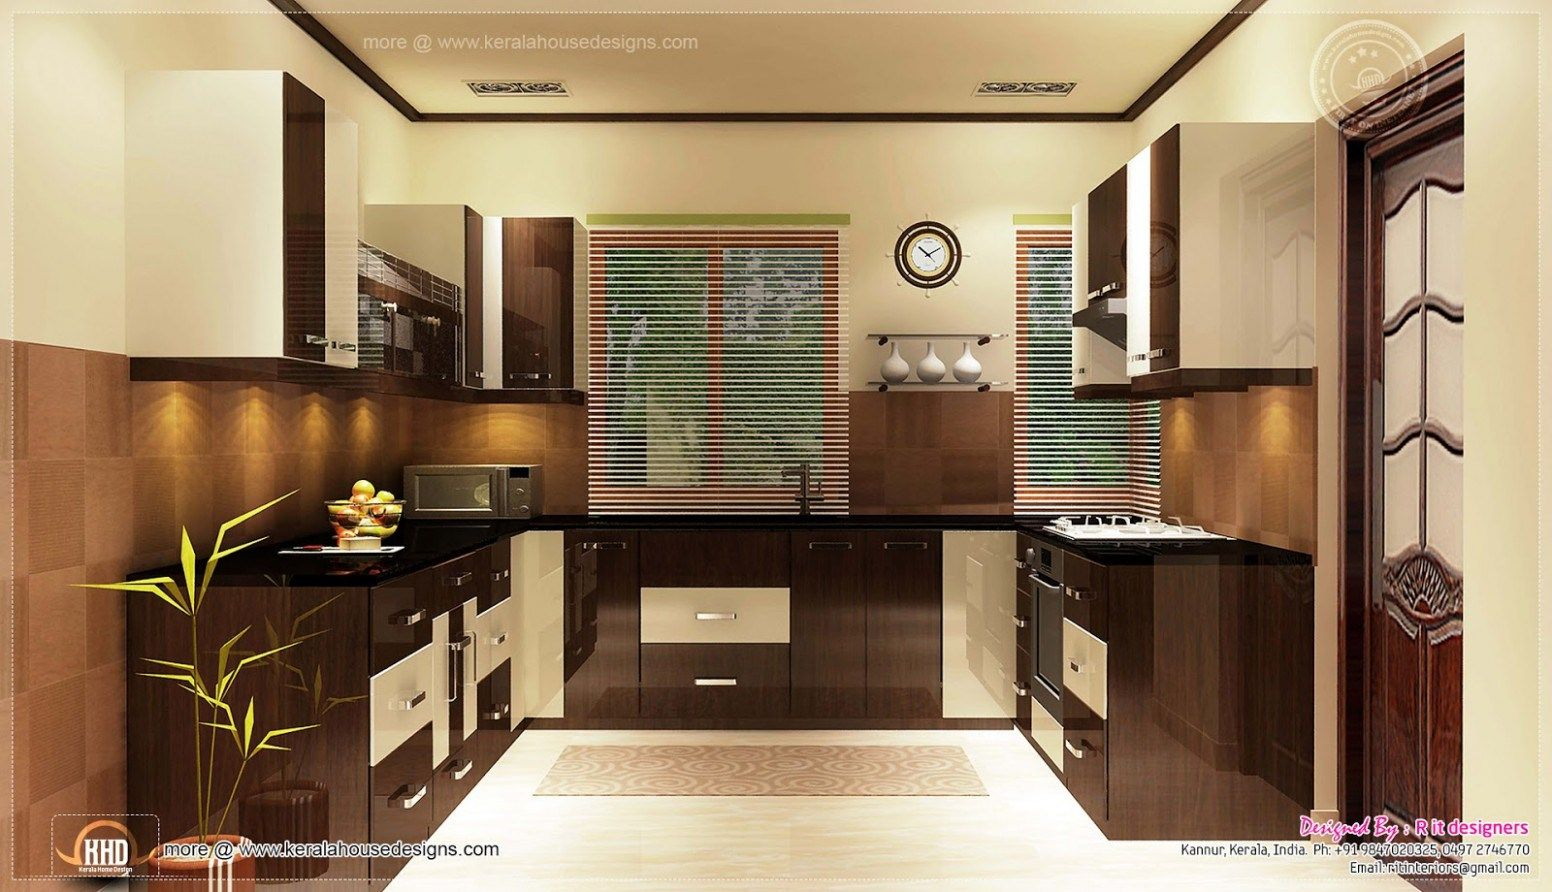 How to leave interior designing ideas without being noticed also pin by design on interiordesgn kitchen home rh pinterest